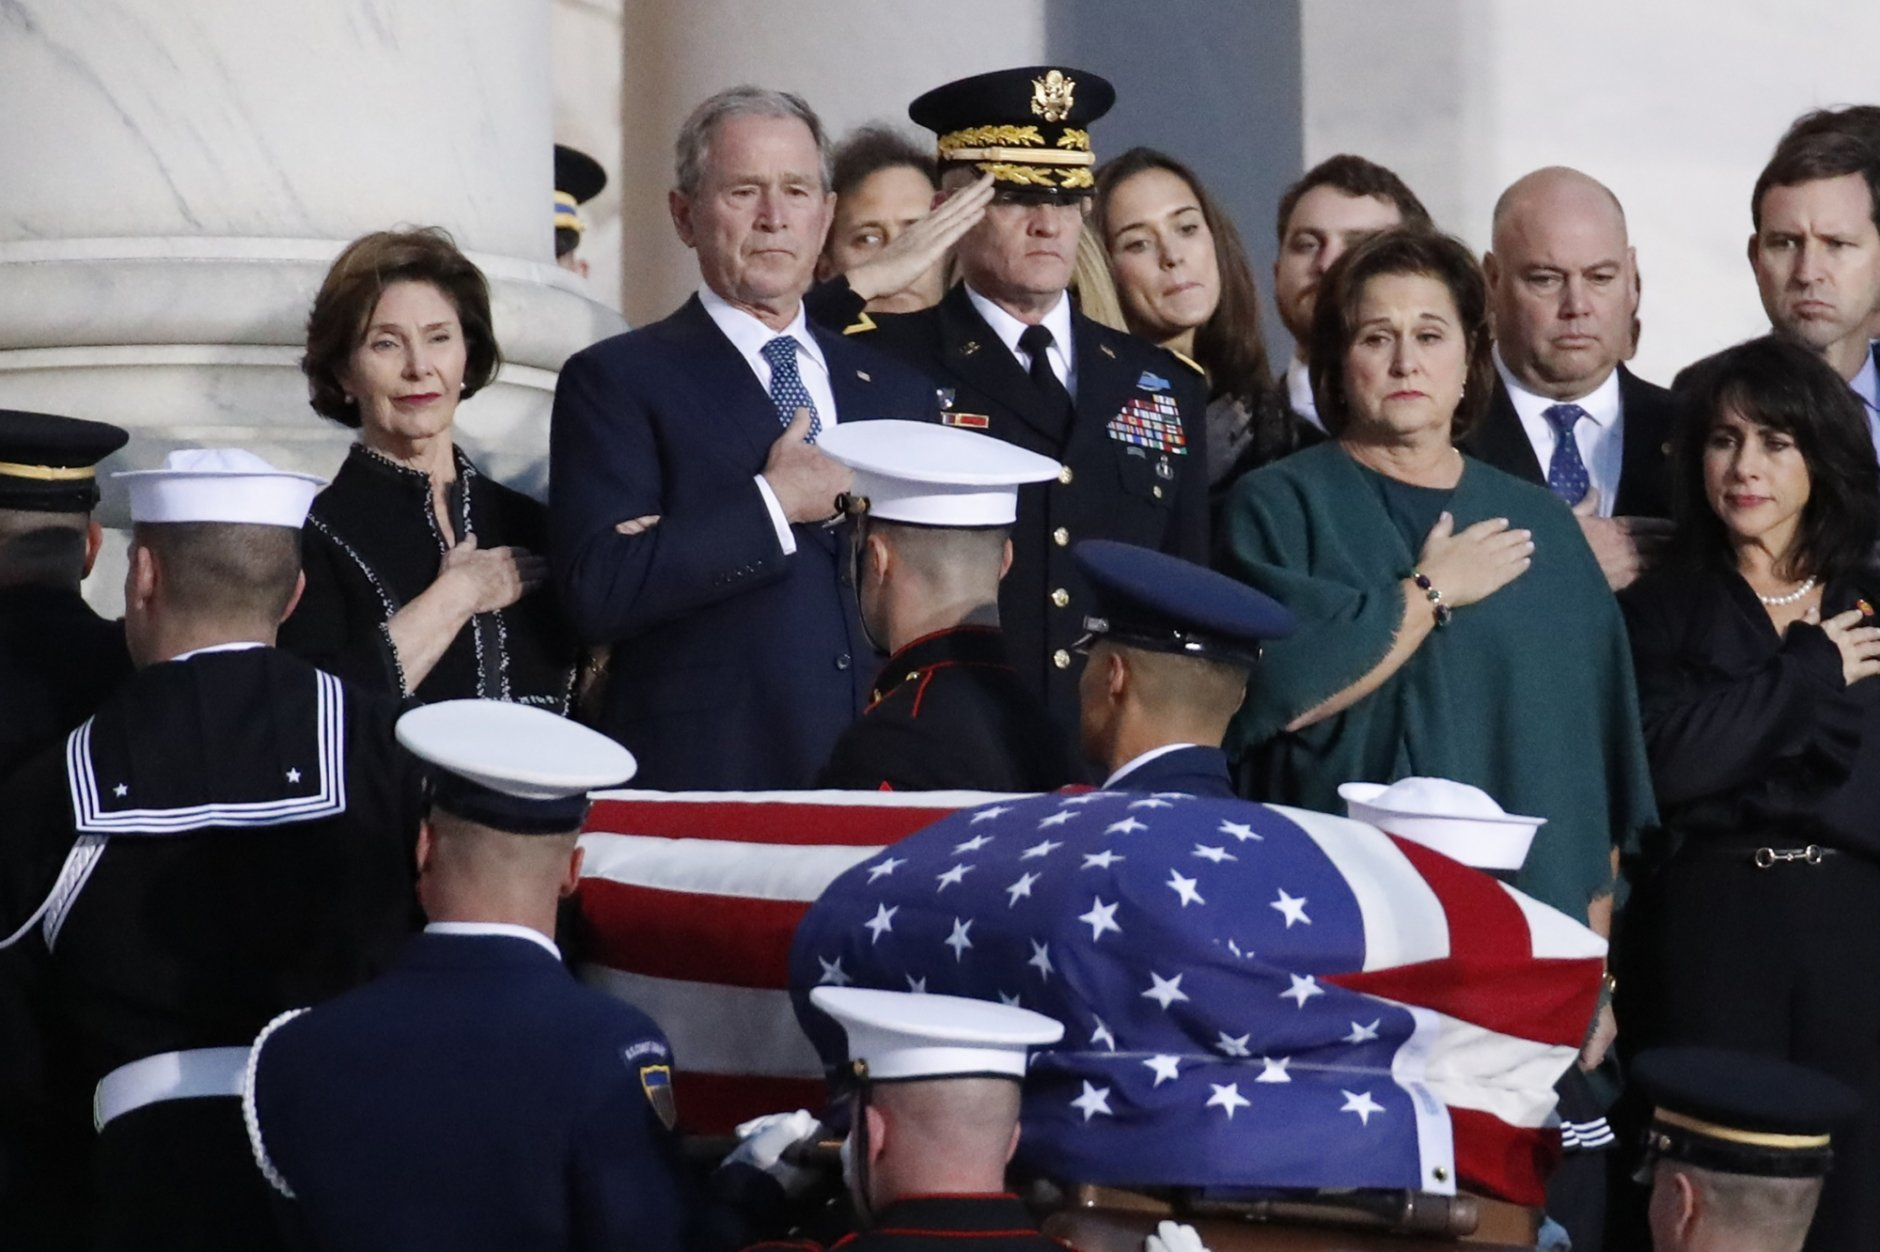 Former President George W. Bush, Laura Bush, left, and other family members watch as the flag-draped casket of former President George H.W. Bush is carried by a joint services military honor guard to lie in state in the rotunda of the U.S. Capitol, Monday, Dec. 3, 2018, in Washington. (AP Photo/Alex Brandon, Pool)